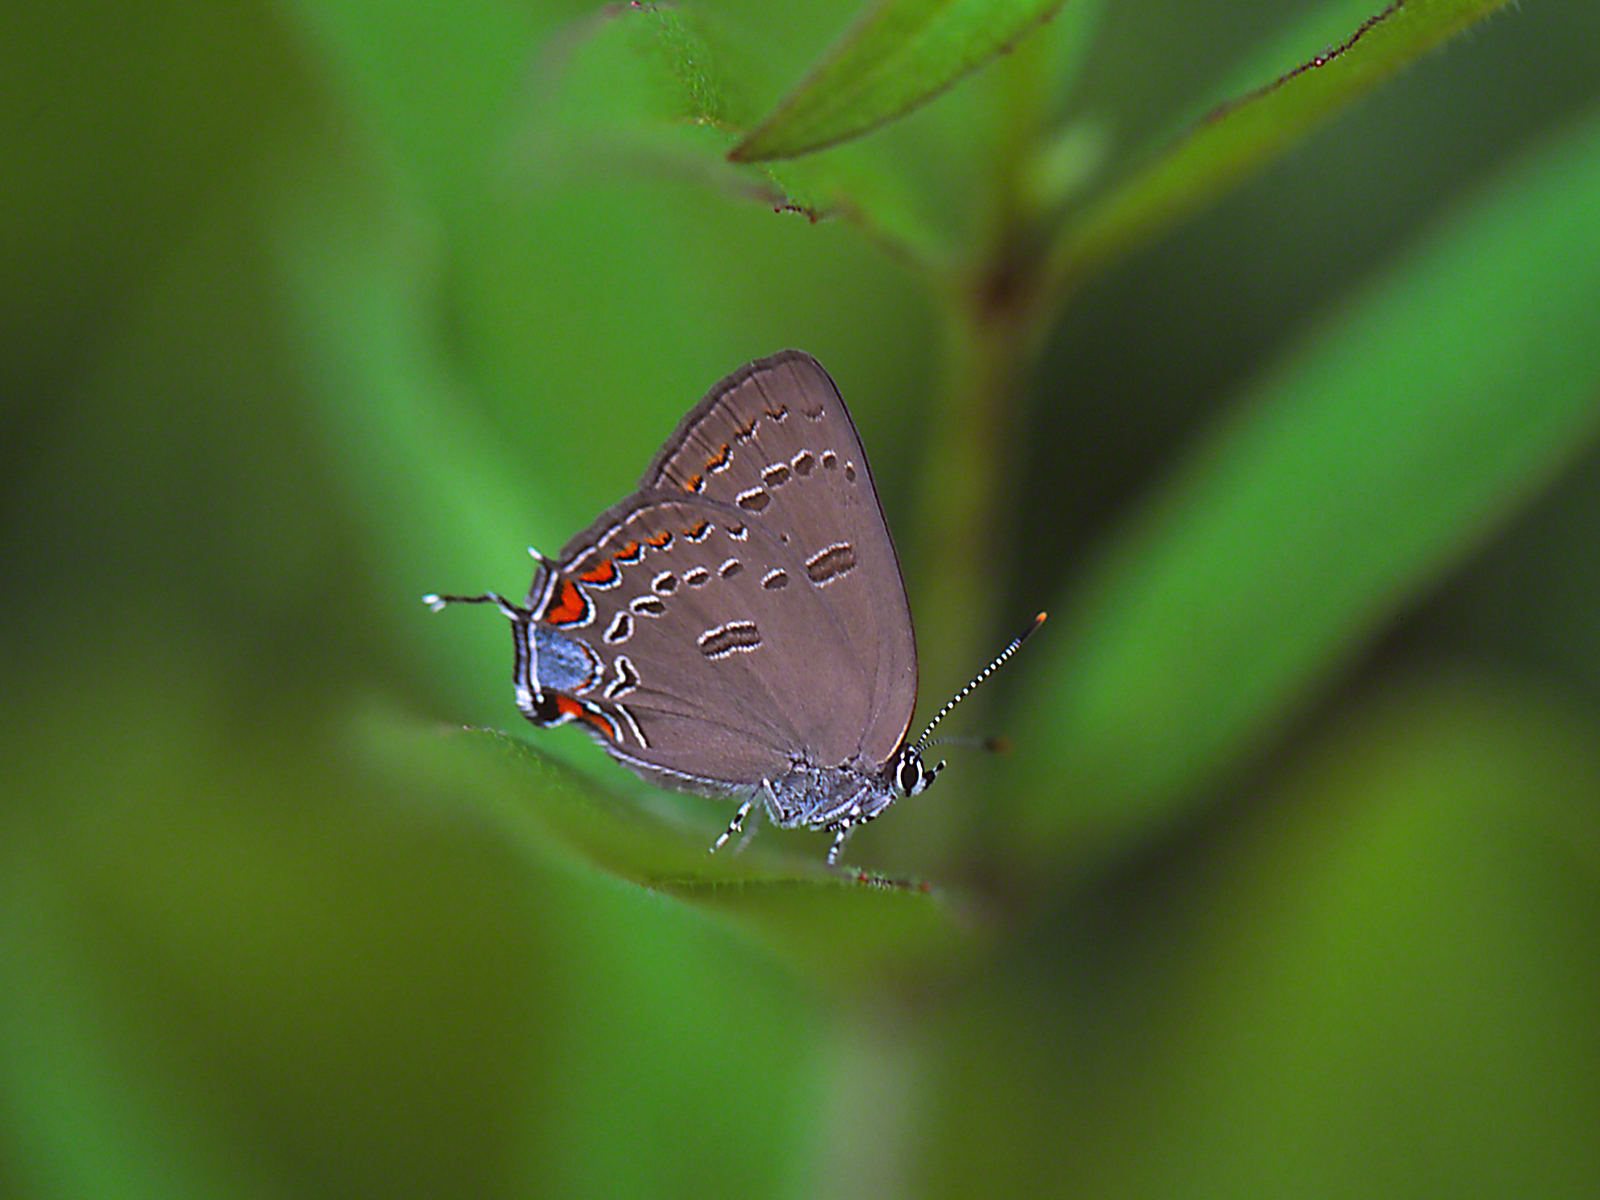 Edward Hairstreak Butterfly (Full ventral) photographed by Jeff Zablow at Lynx Prairie Reserve, Ohio